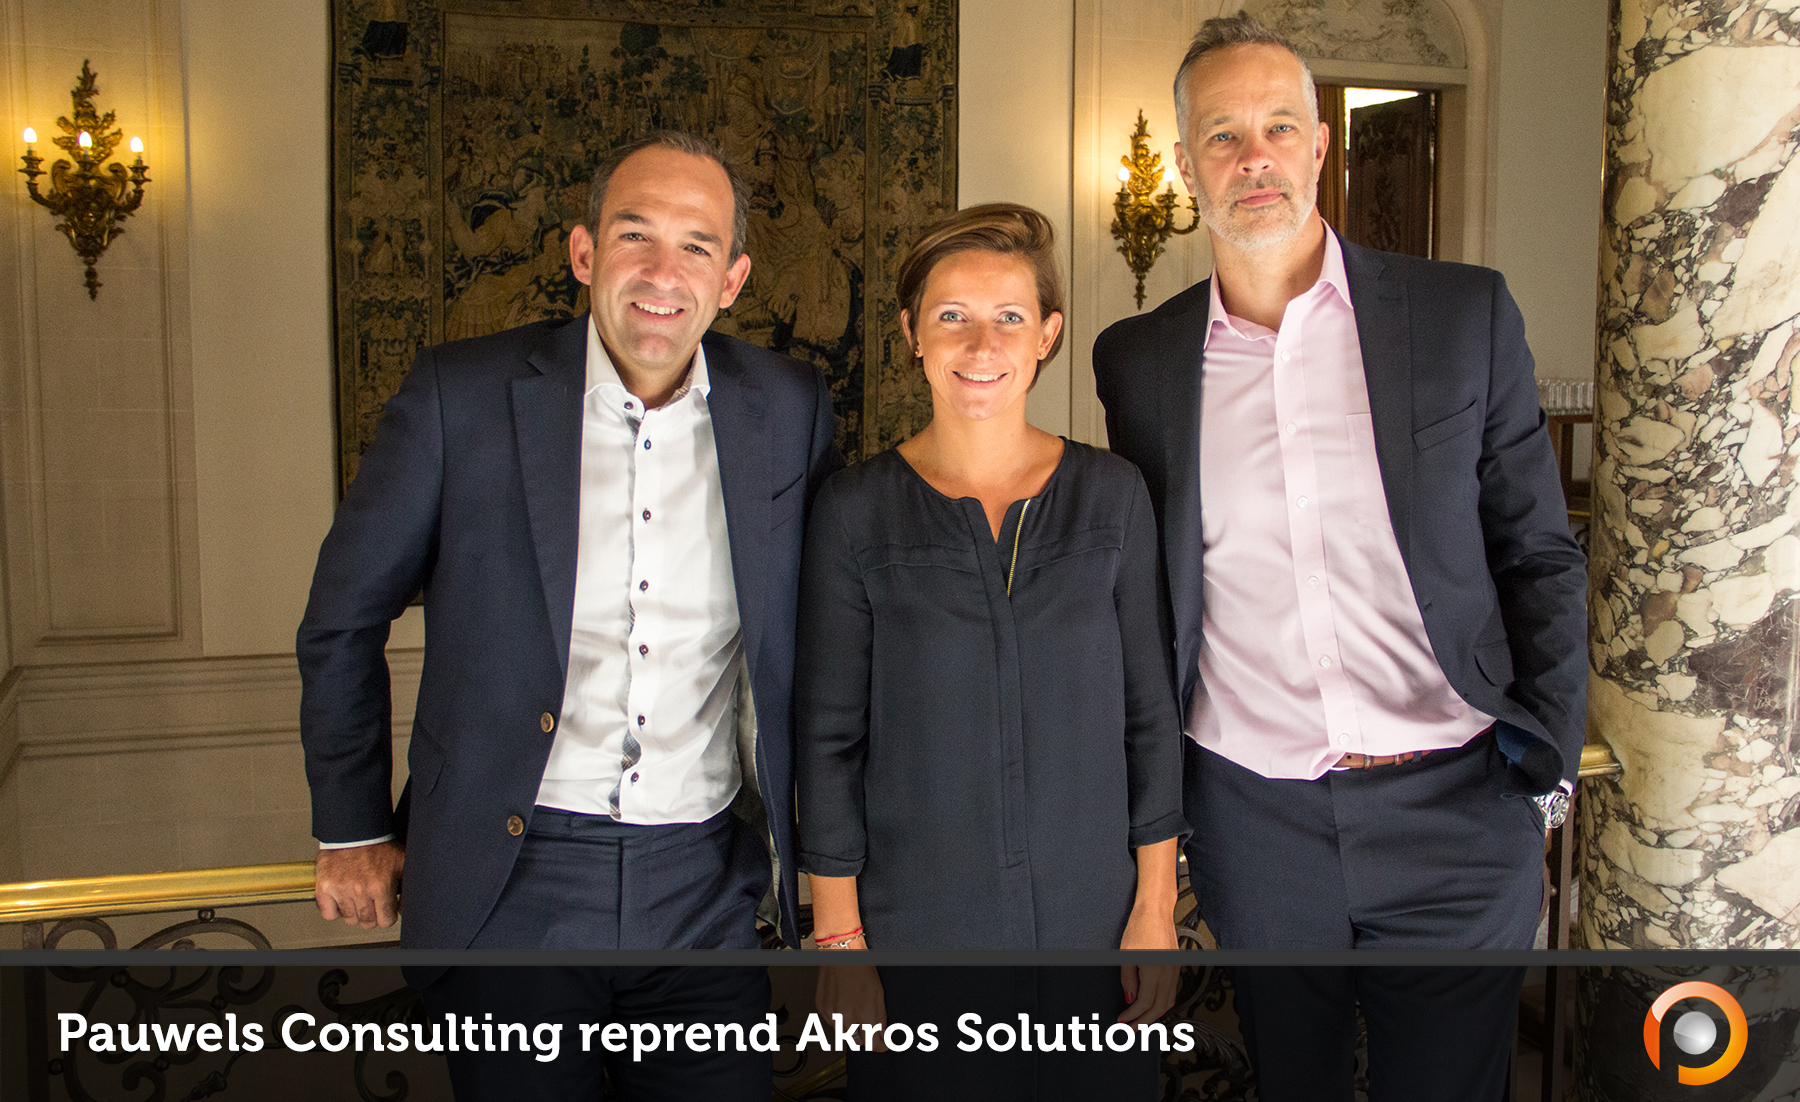 Pauwels Consulting reprend Akros Solutions - LI